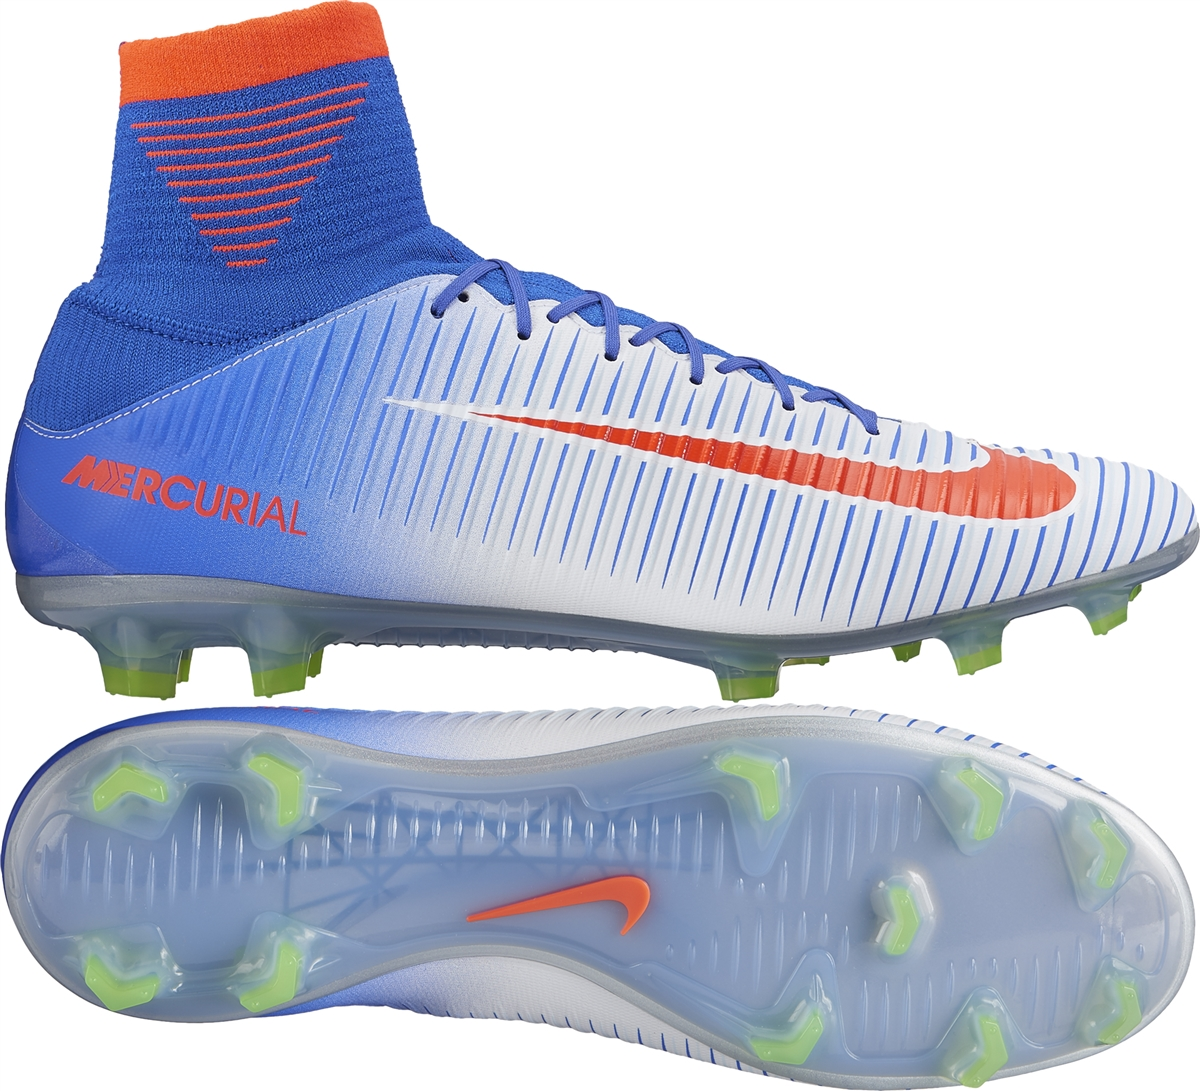 bbad9fdc8b57 Nike Women s Mercurial Veloce III FG Soccer Cleats (White Bright ...